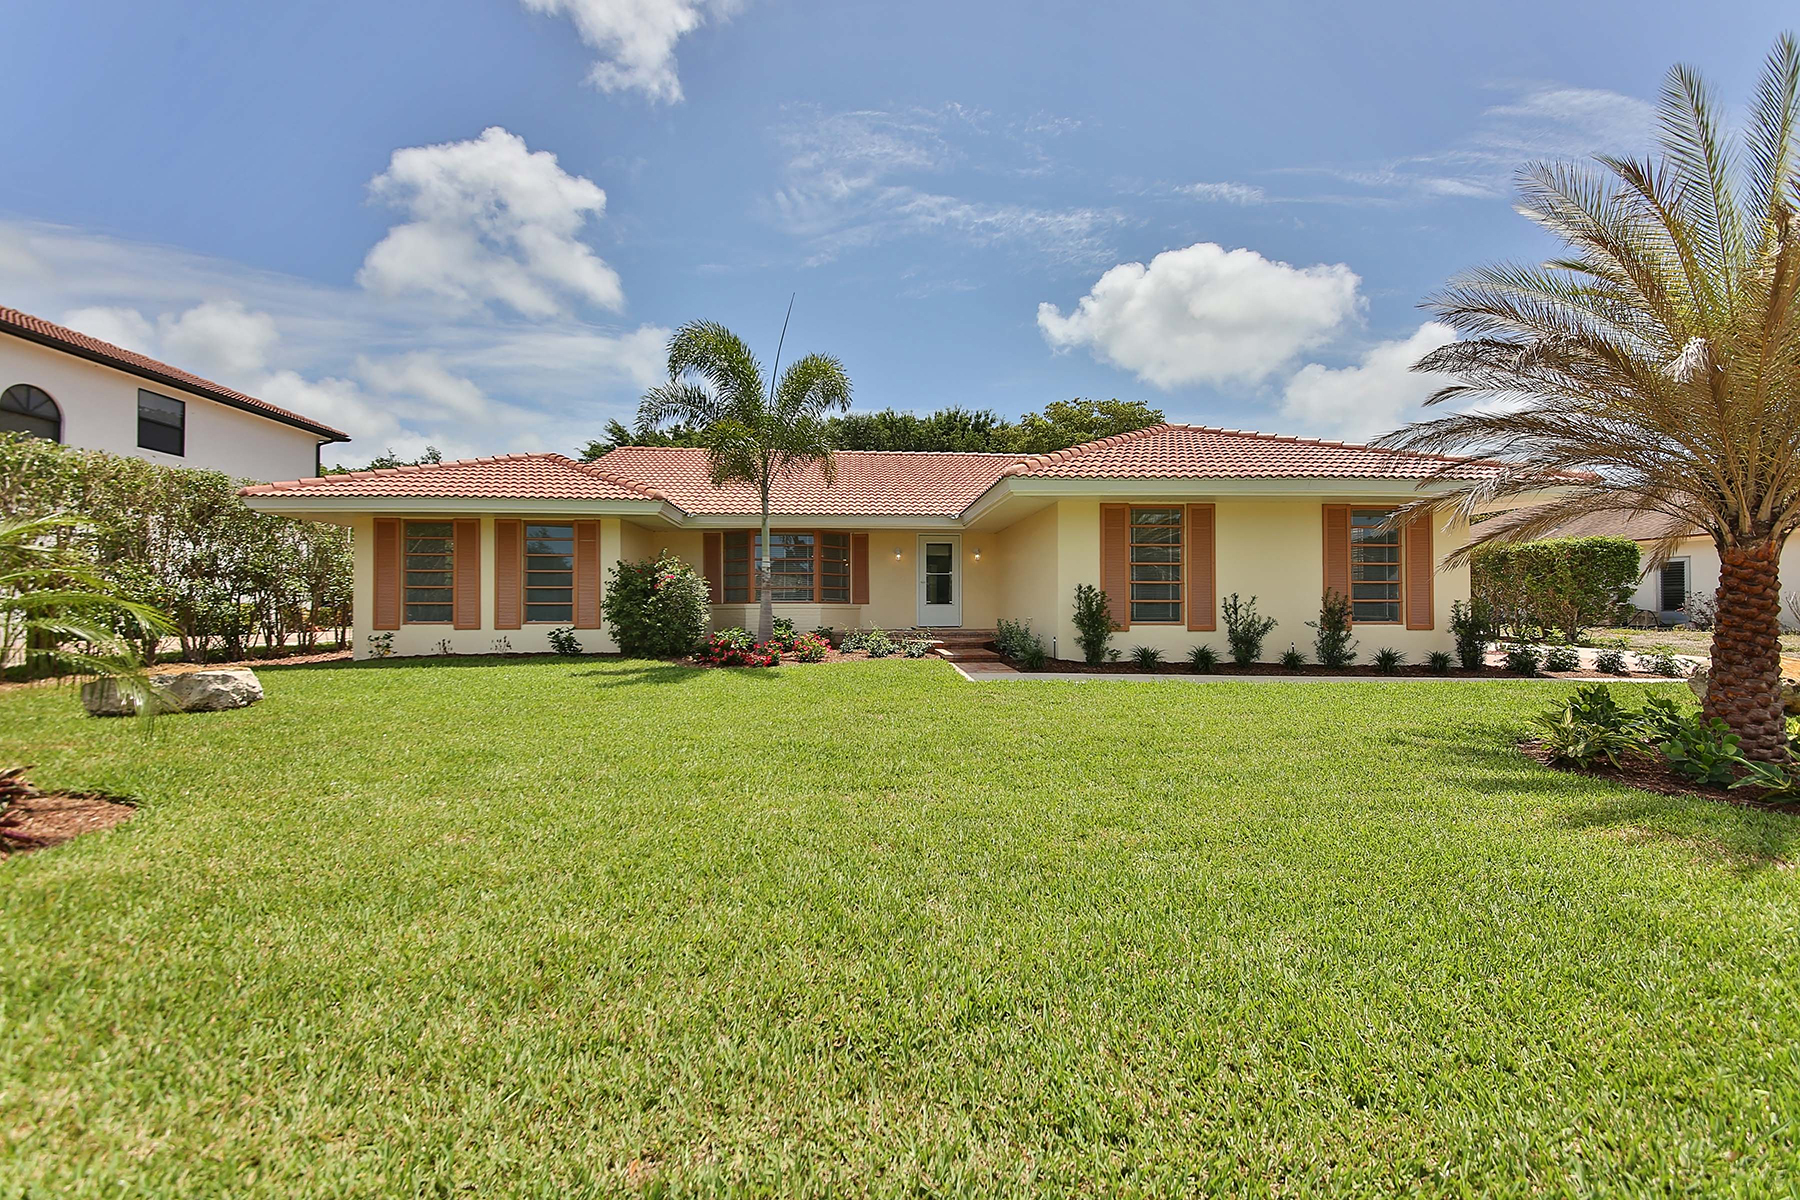 Single Family Home for Sale at MARCO ISLAND 267 Shadowridge Ct, Marco Island, Florida 34145 United States